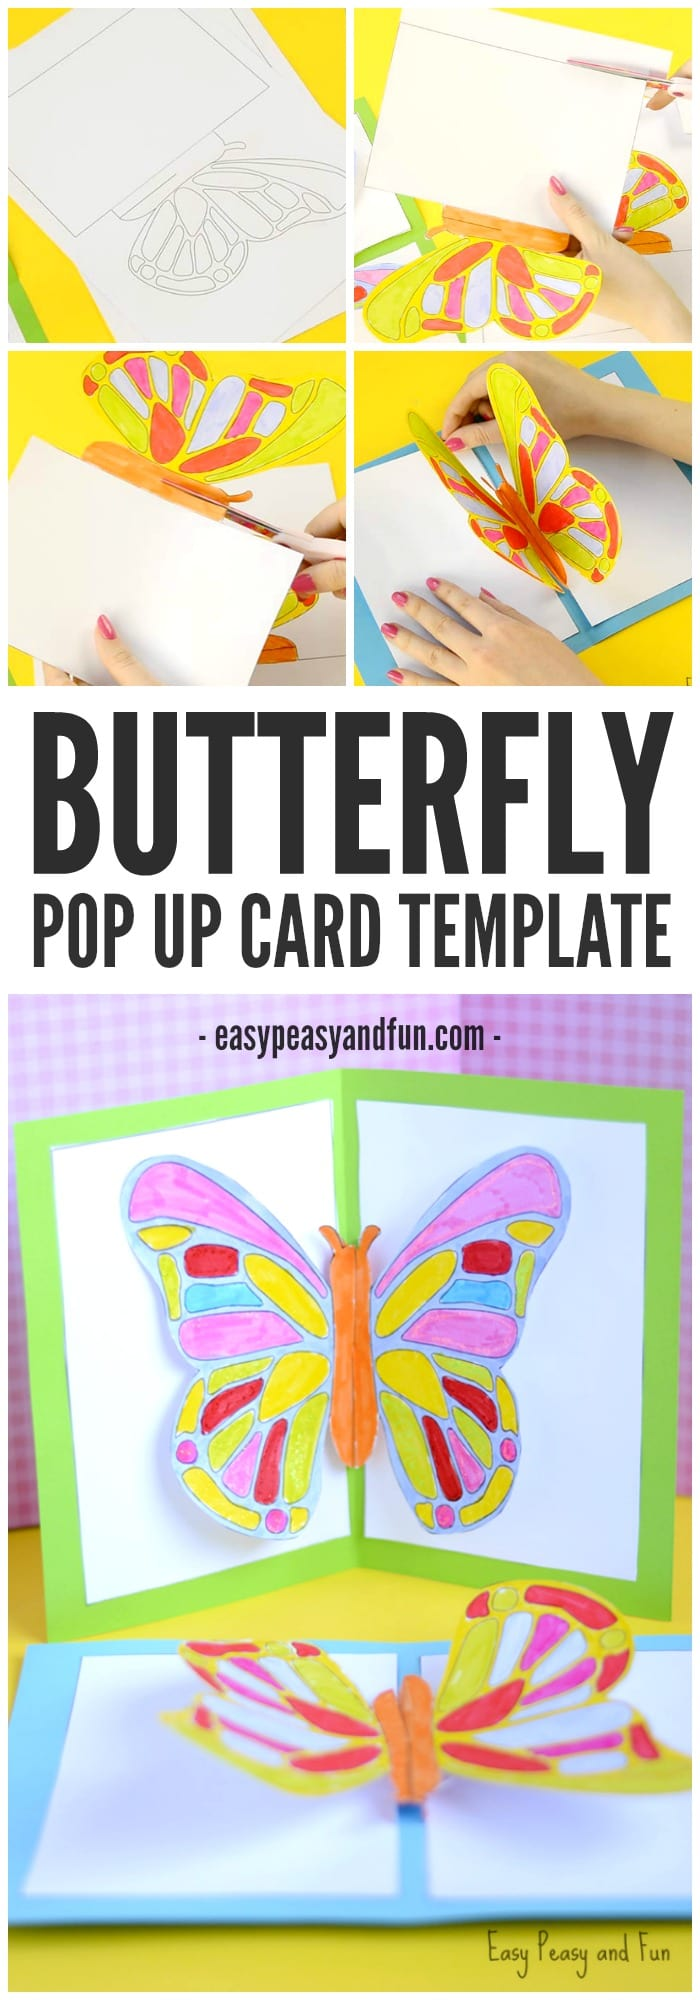 pop up storybook template - diy butterfly pop up card with a template easy peasy and fun